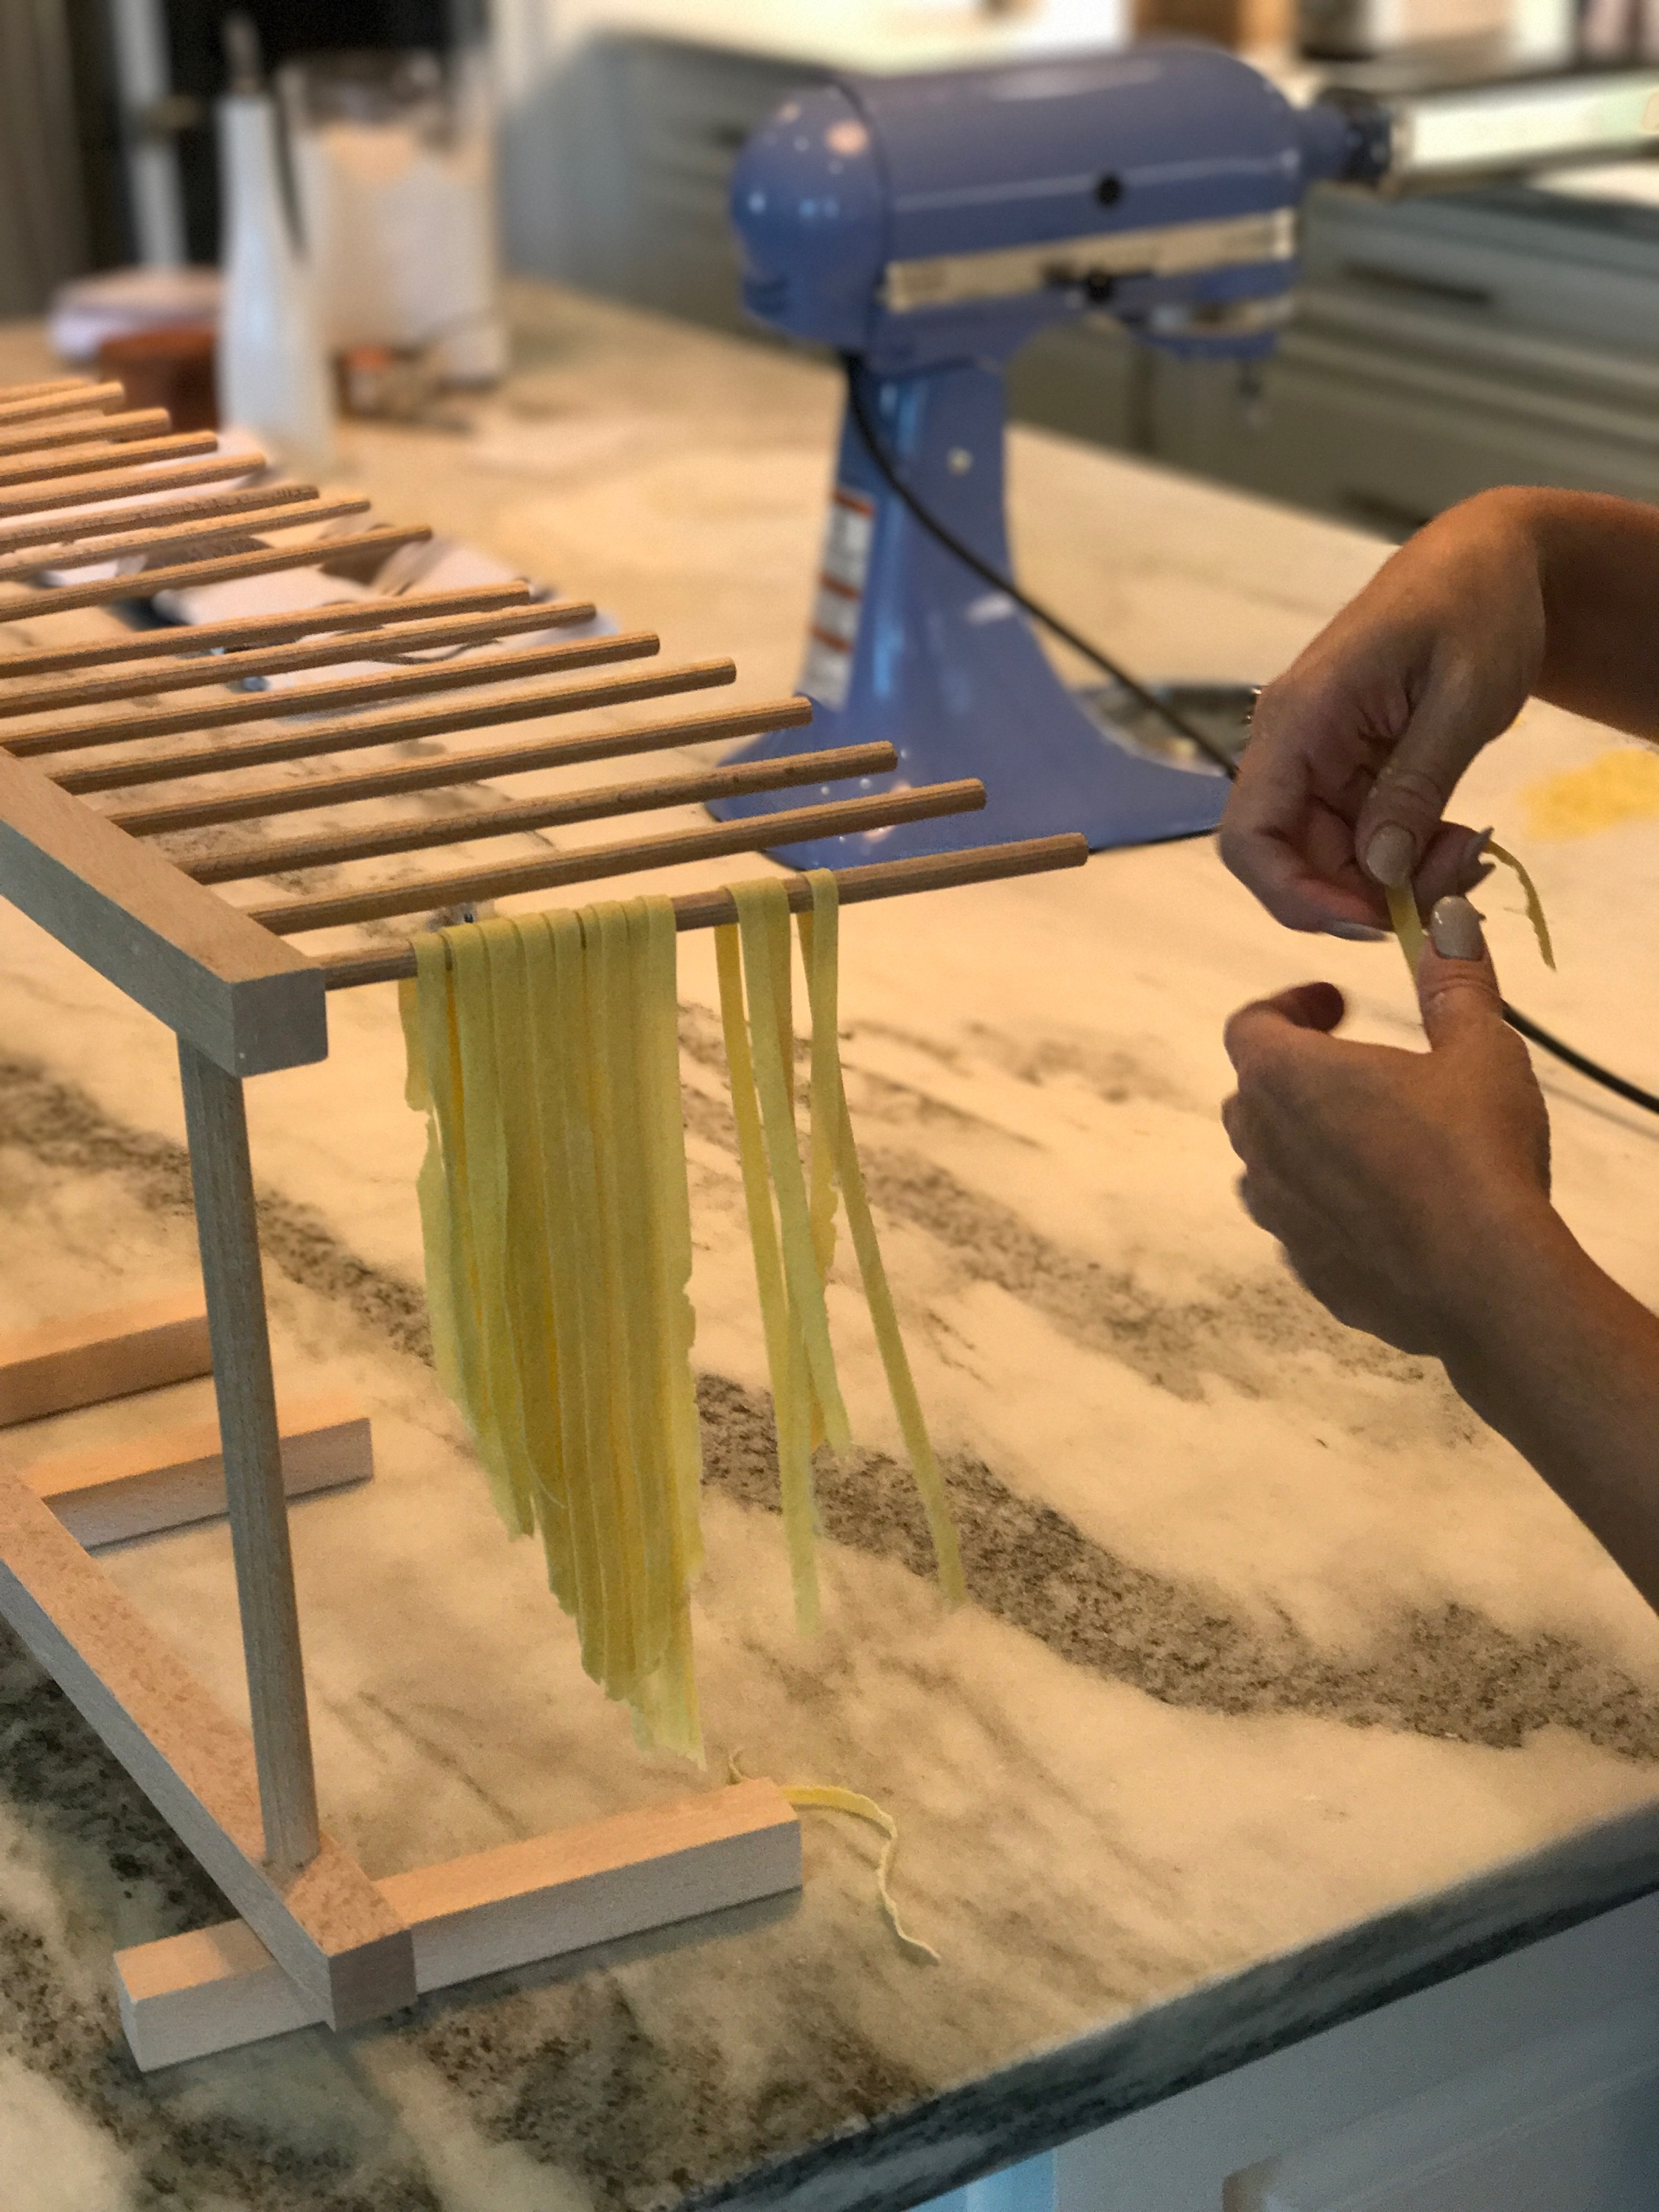 You can use wooden pasta racks or the backs of kitchen stools or chairs to hang your pasta.